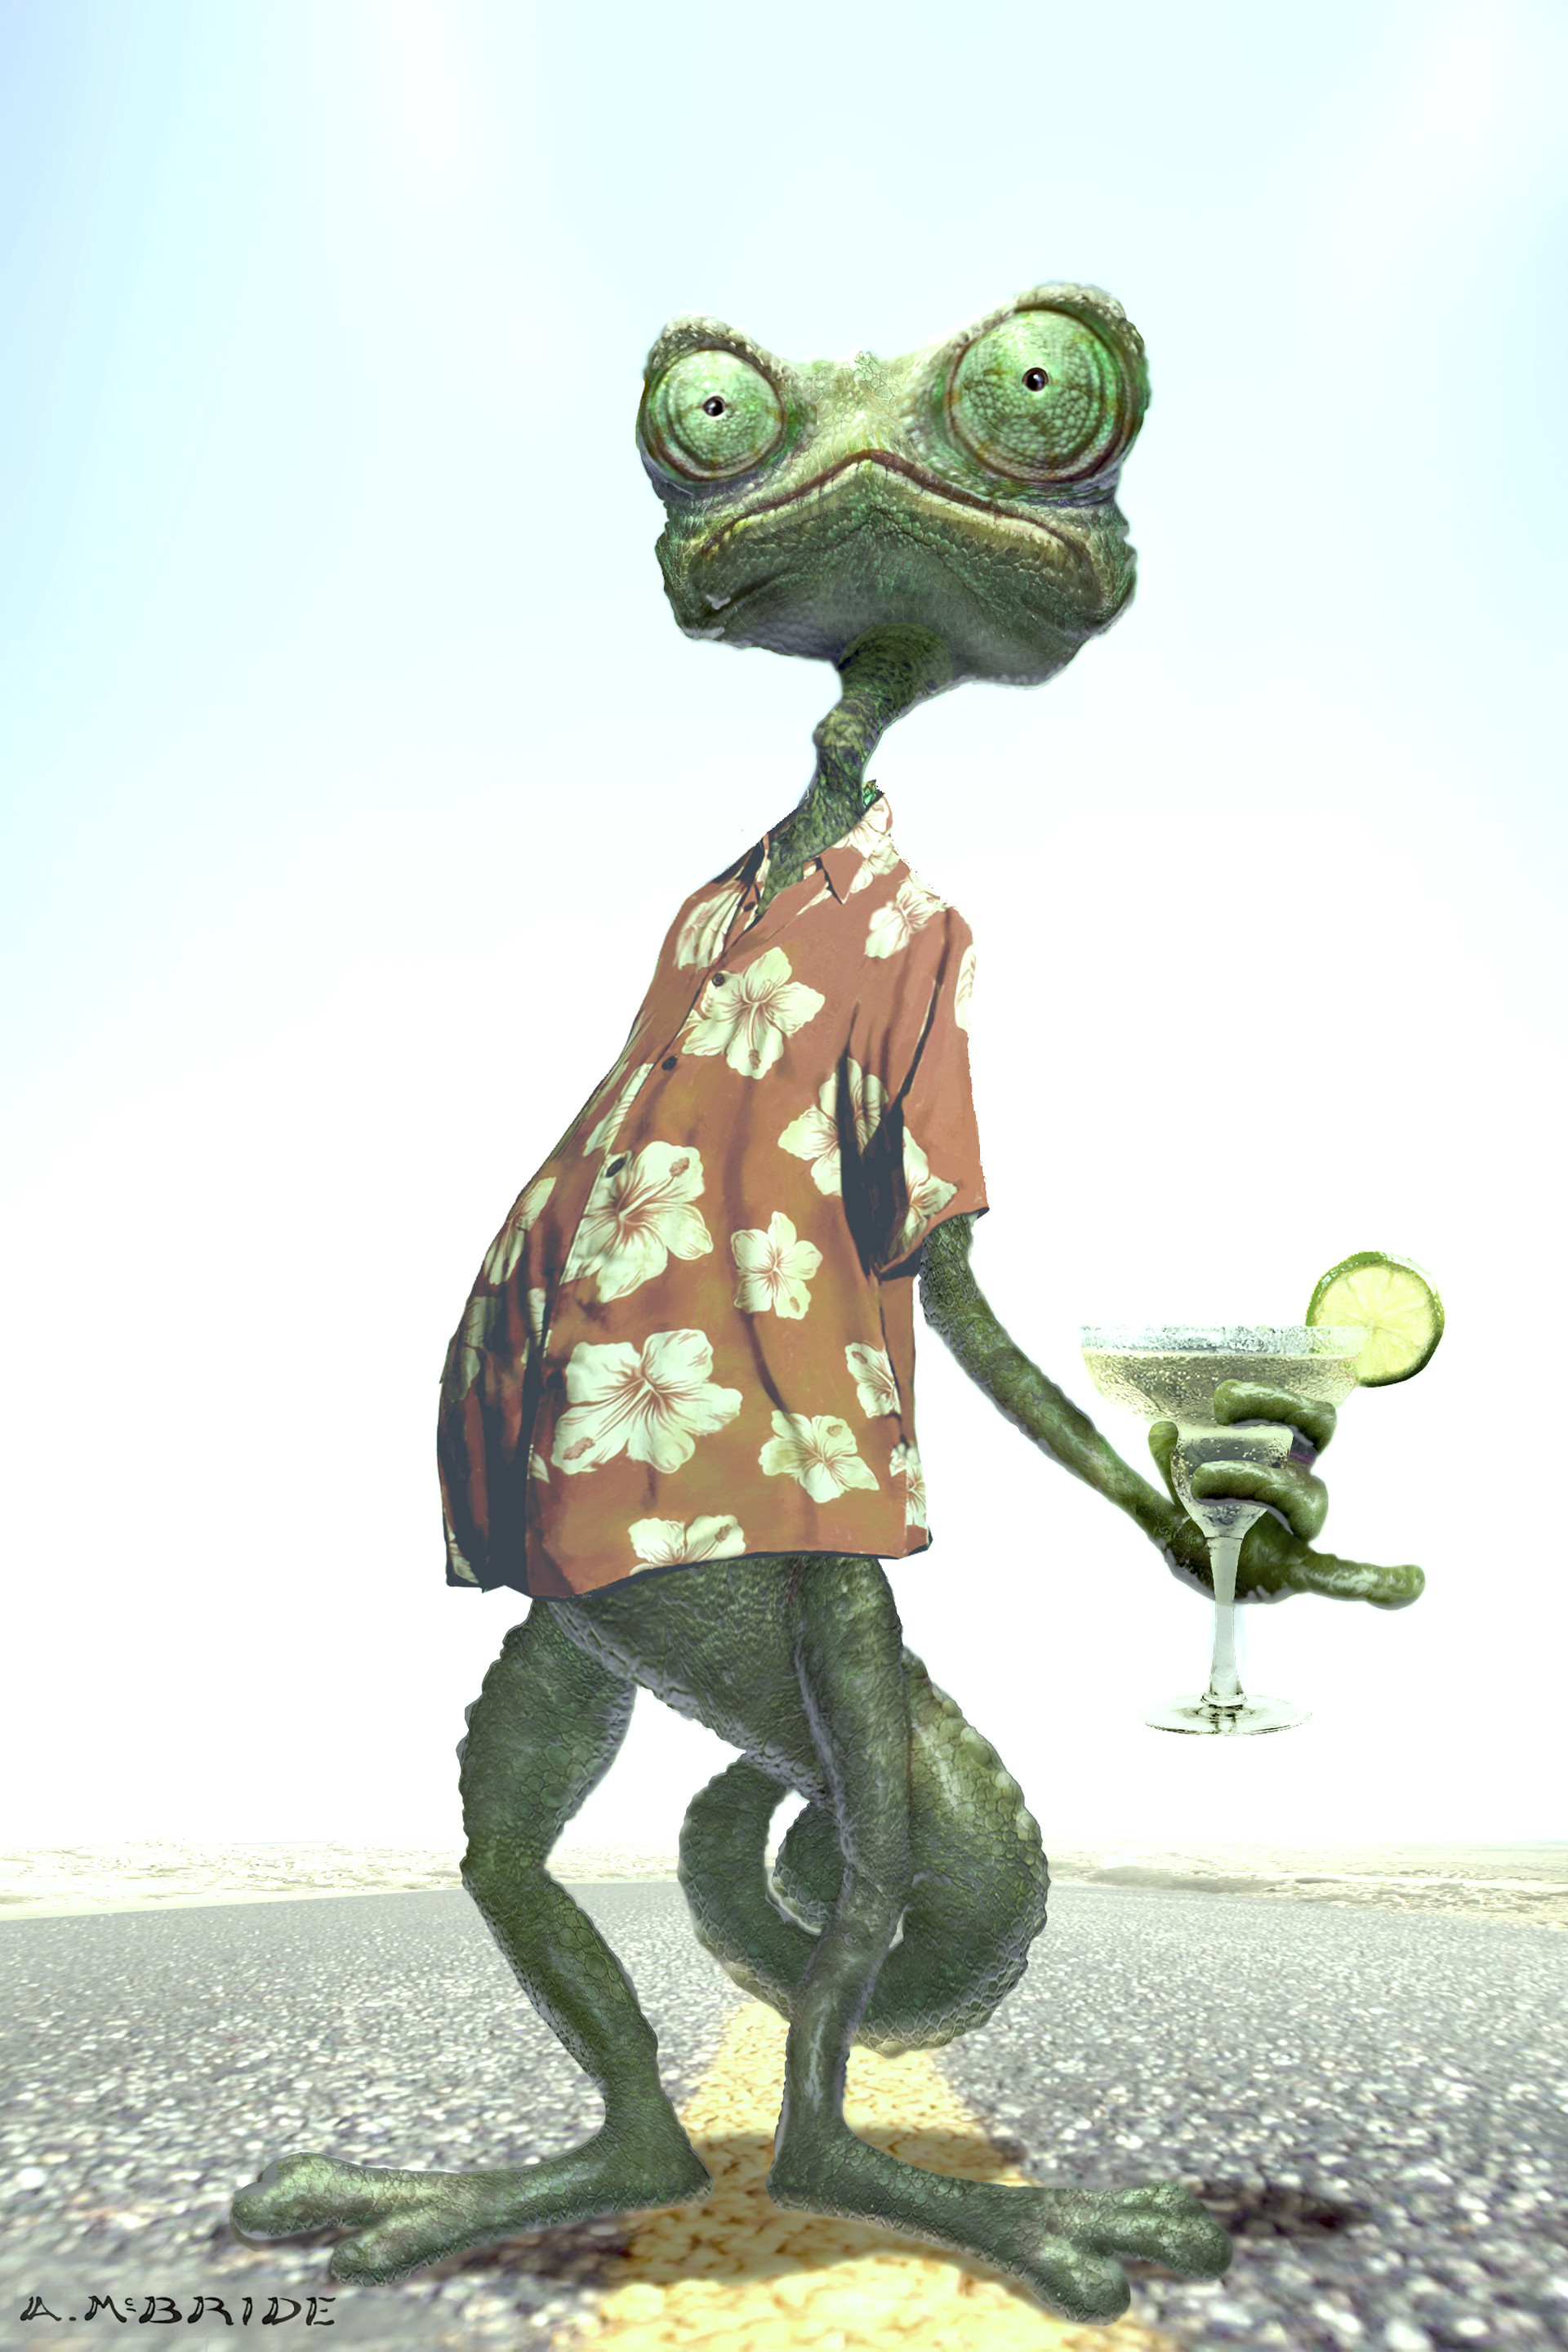 Rango (video game) - Wikipedia